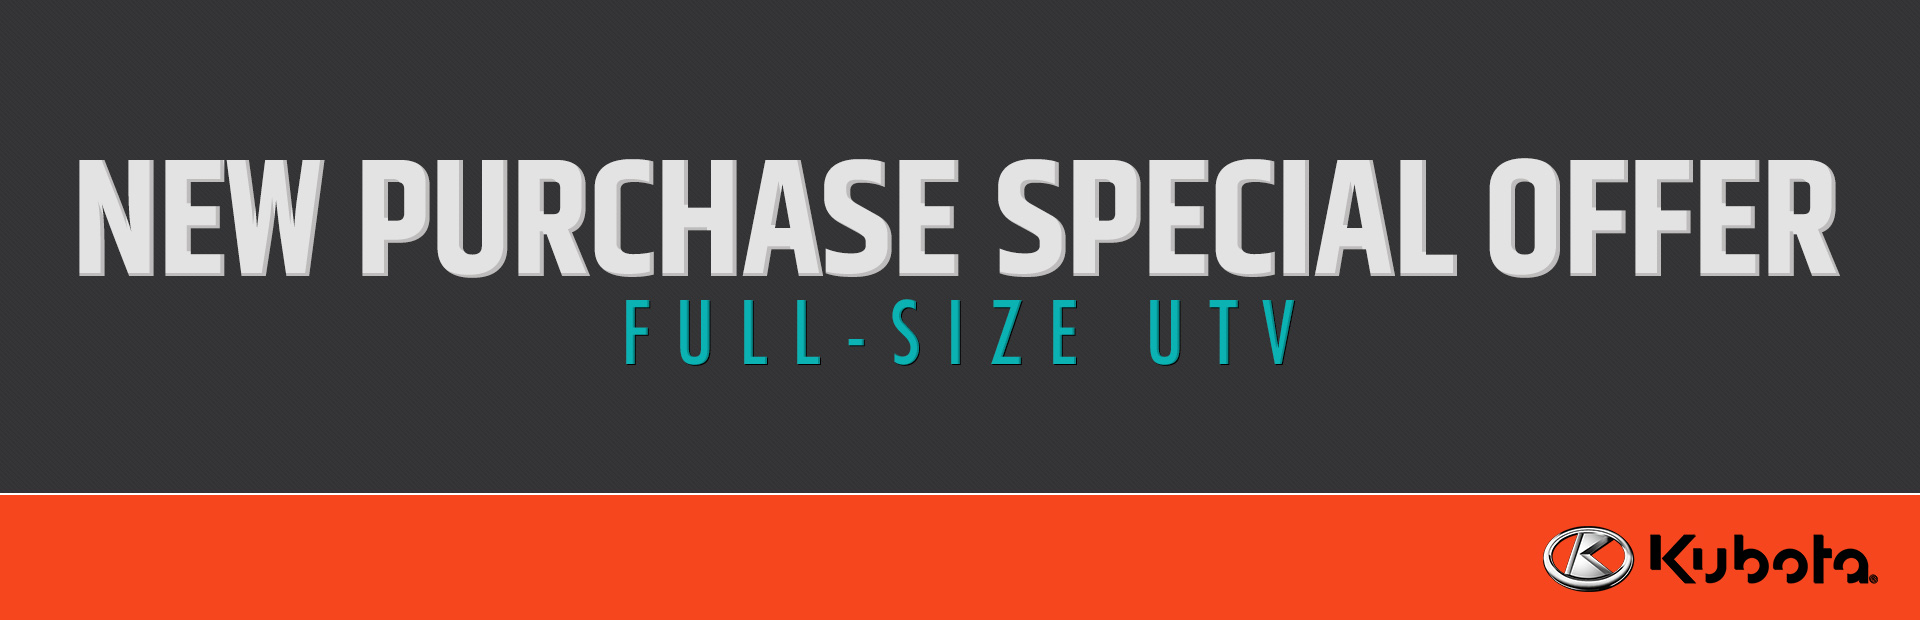 New Purchase Special Offer - Full-Size UTV